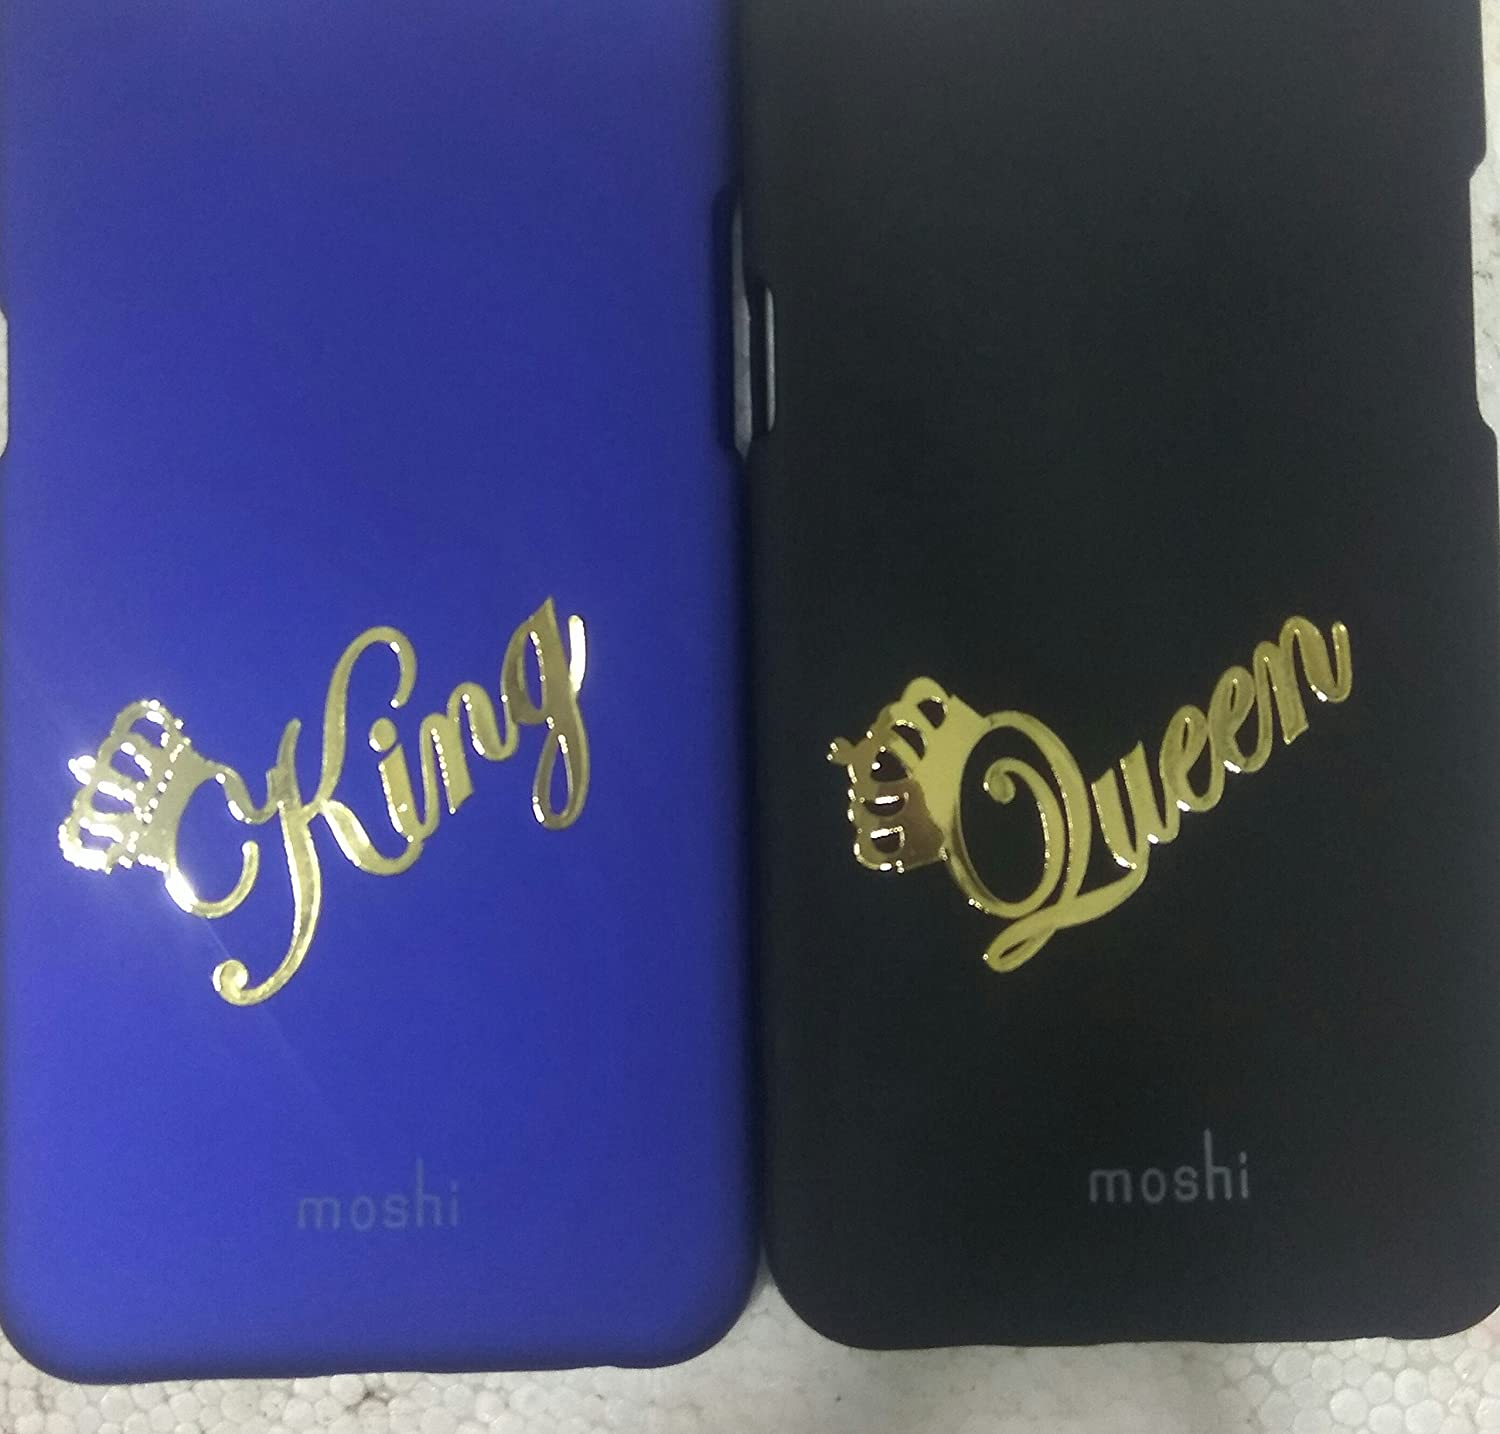 Vivo v5 2 mobile cover with king queen metal stiker phone cover blue black amazon in electronics